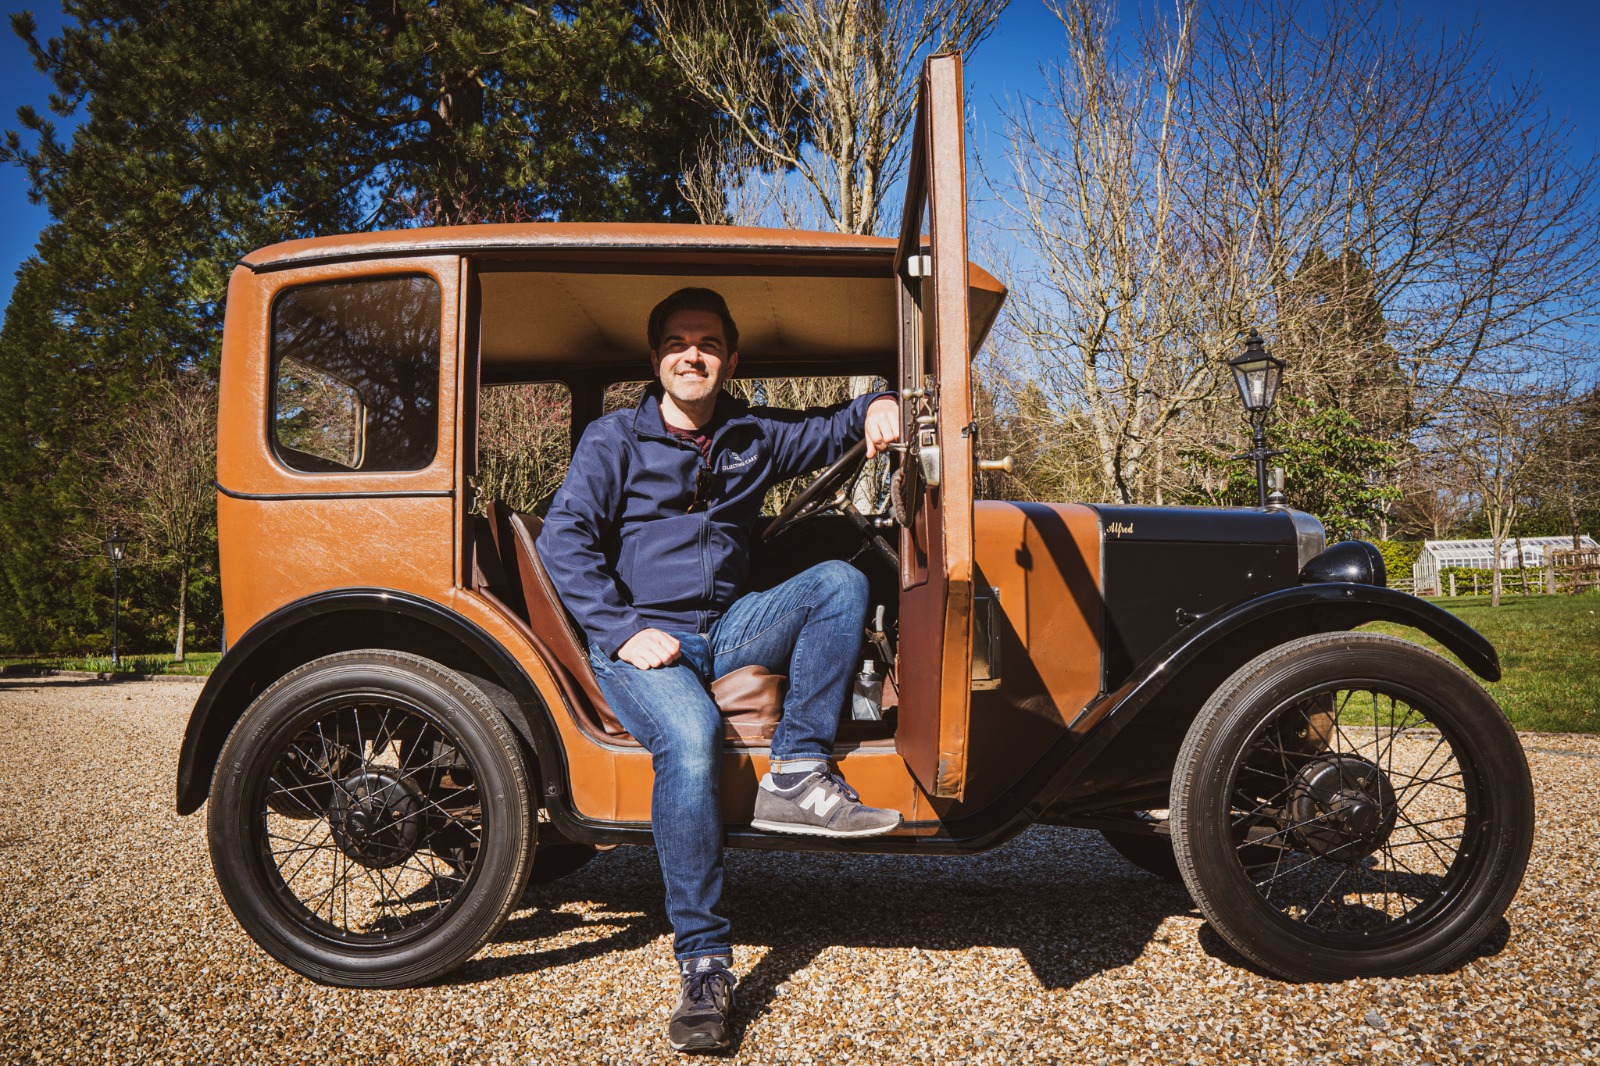 IS THE AUSTIN 7 RESPONSIBLE FOR THE MCLAREN F1?